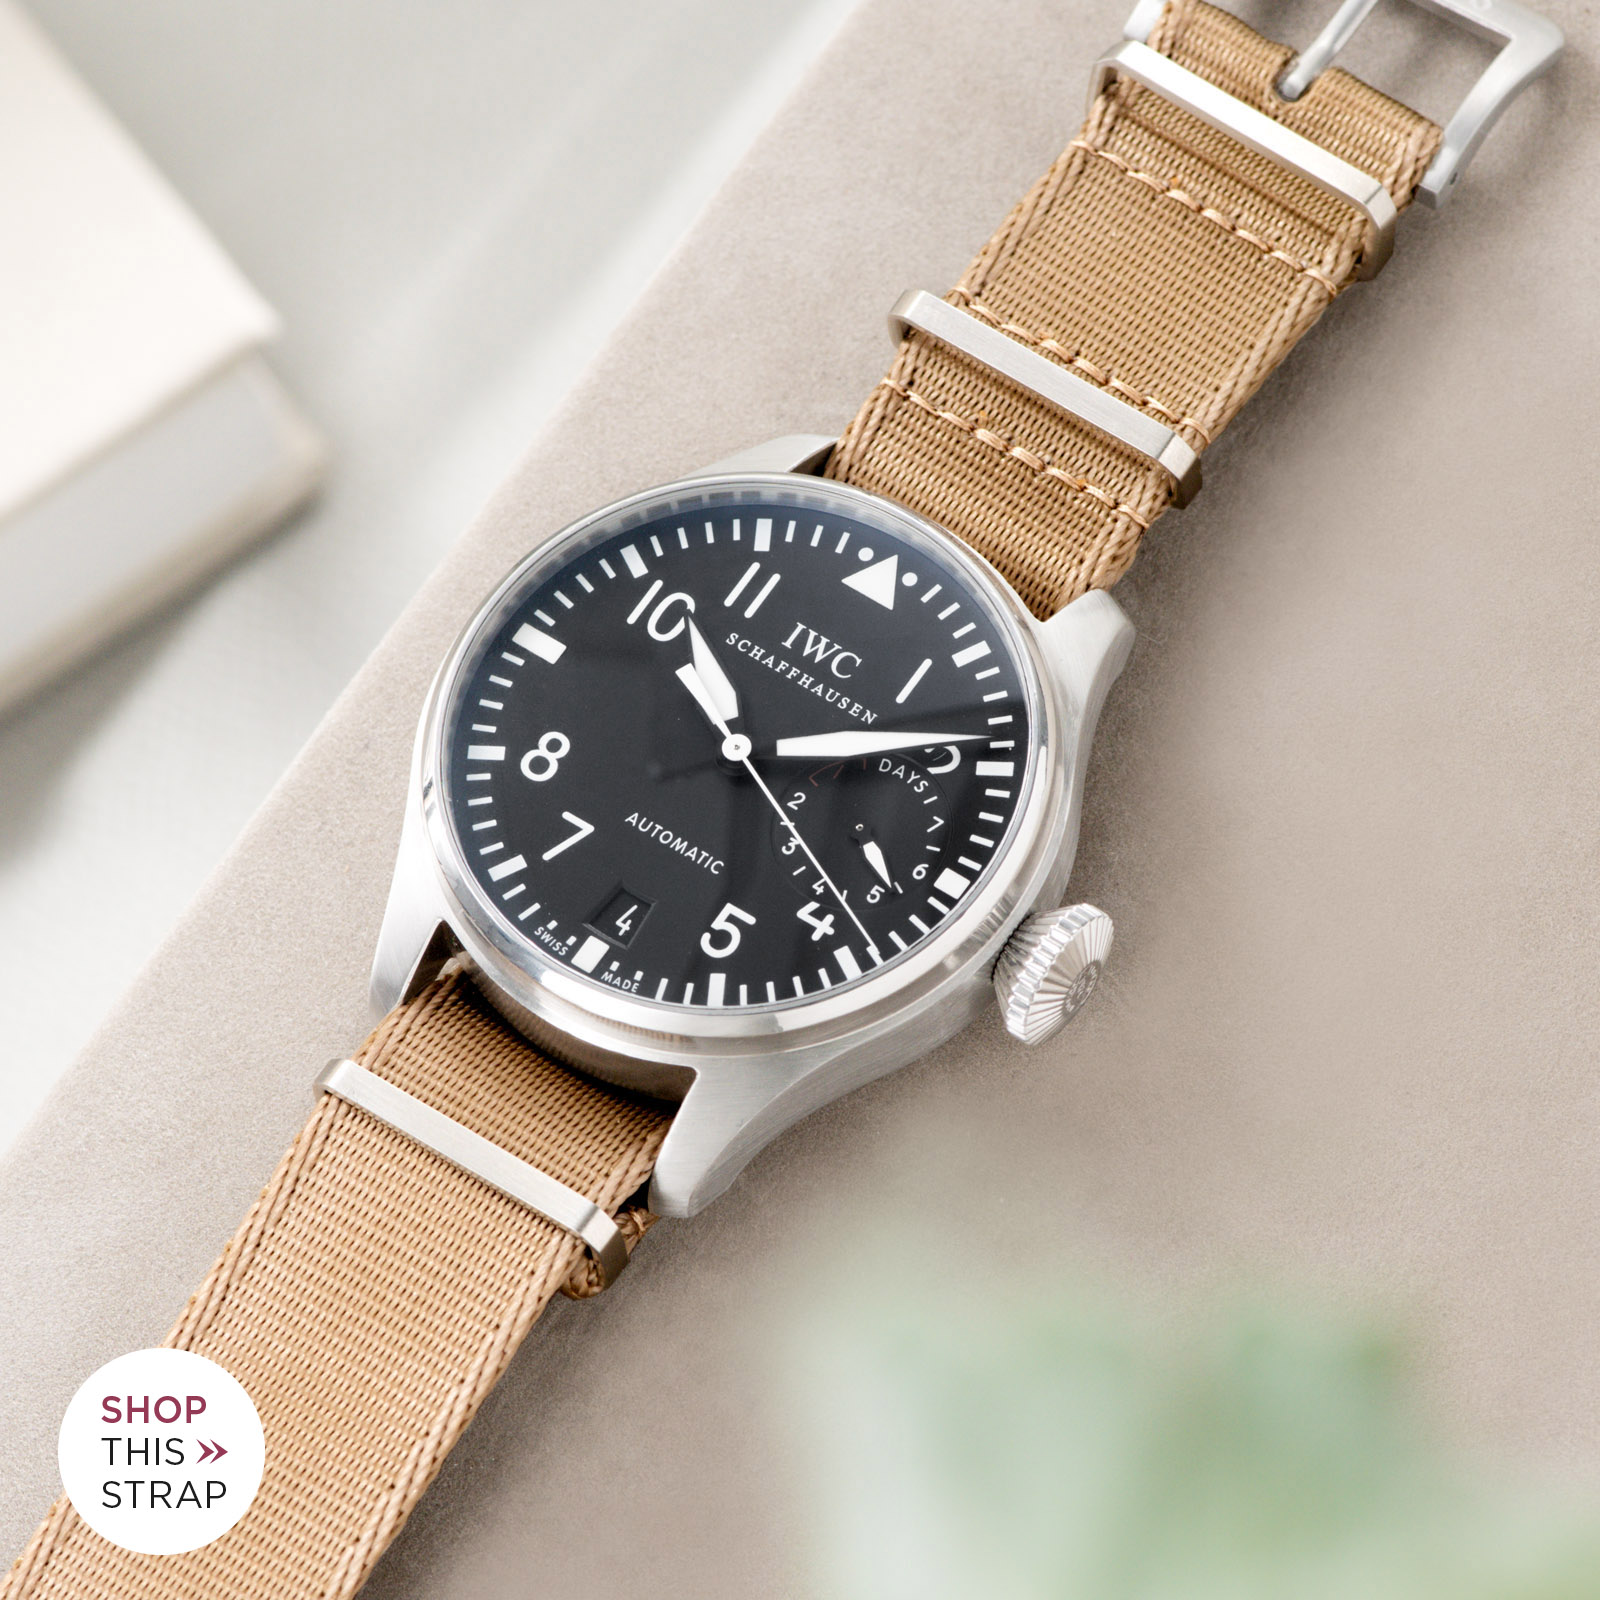 Bulang and Sons_Strap Guide_IWC Big Pilot ref IW5004_Deluxe Nylon Nato Watch Strap Coyote Brown